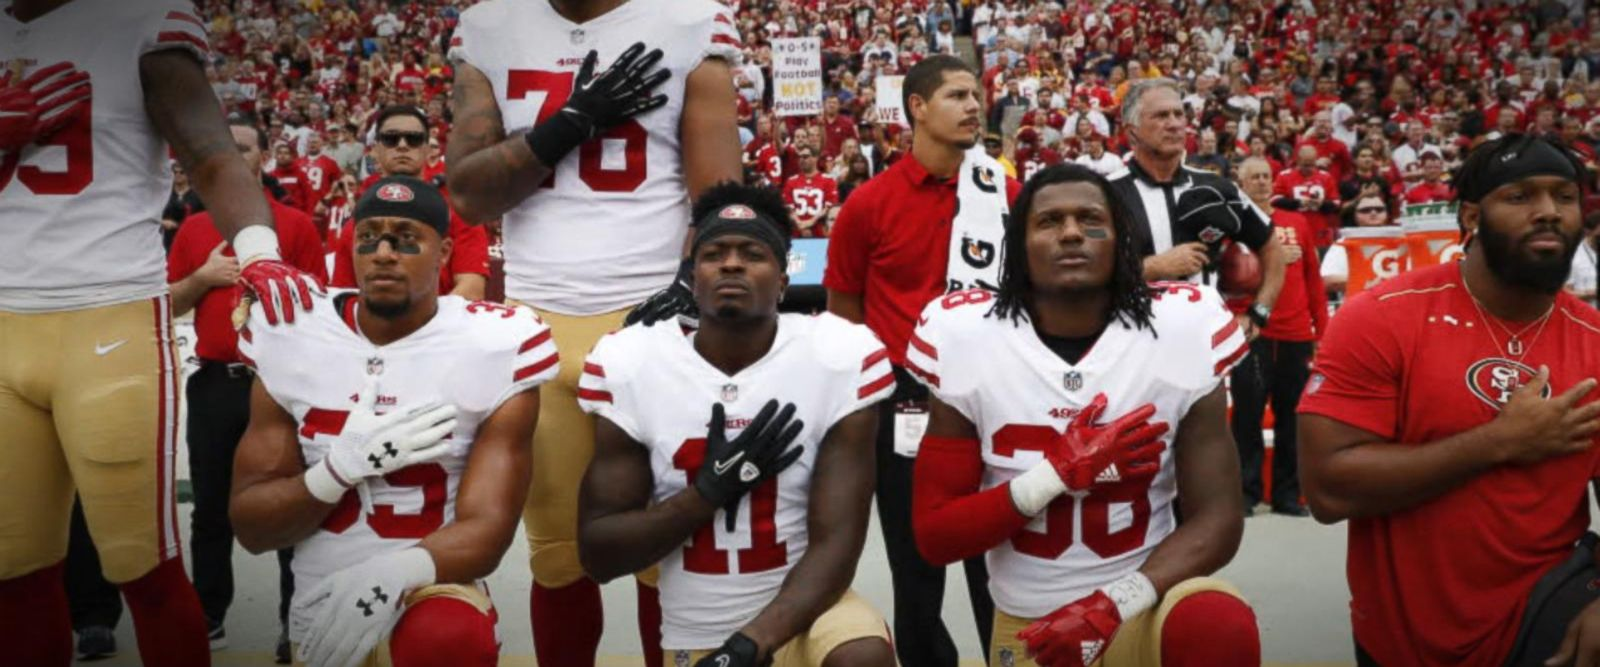 VIDEO: NFL players, team owners meet amid anthem controversy